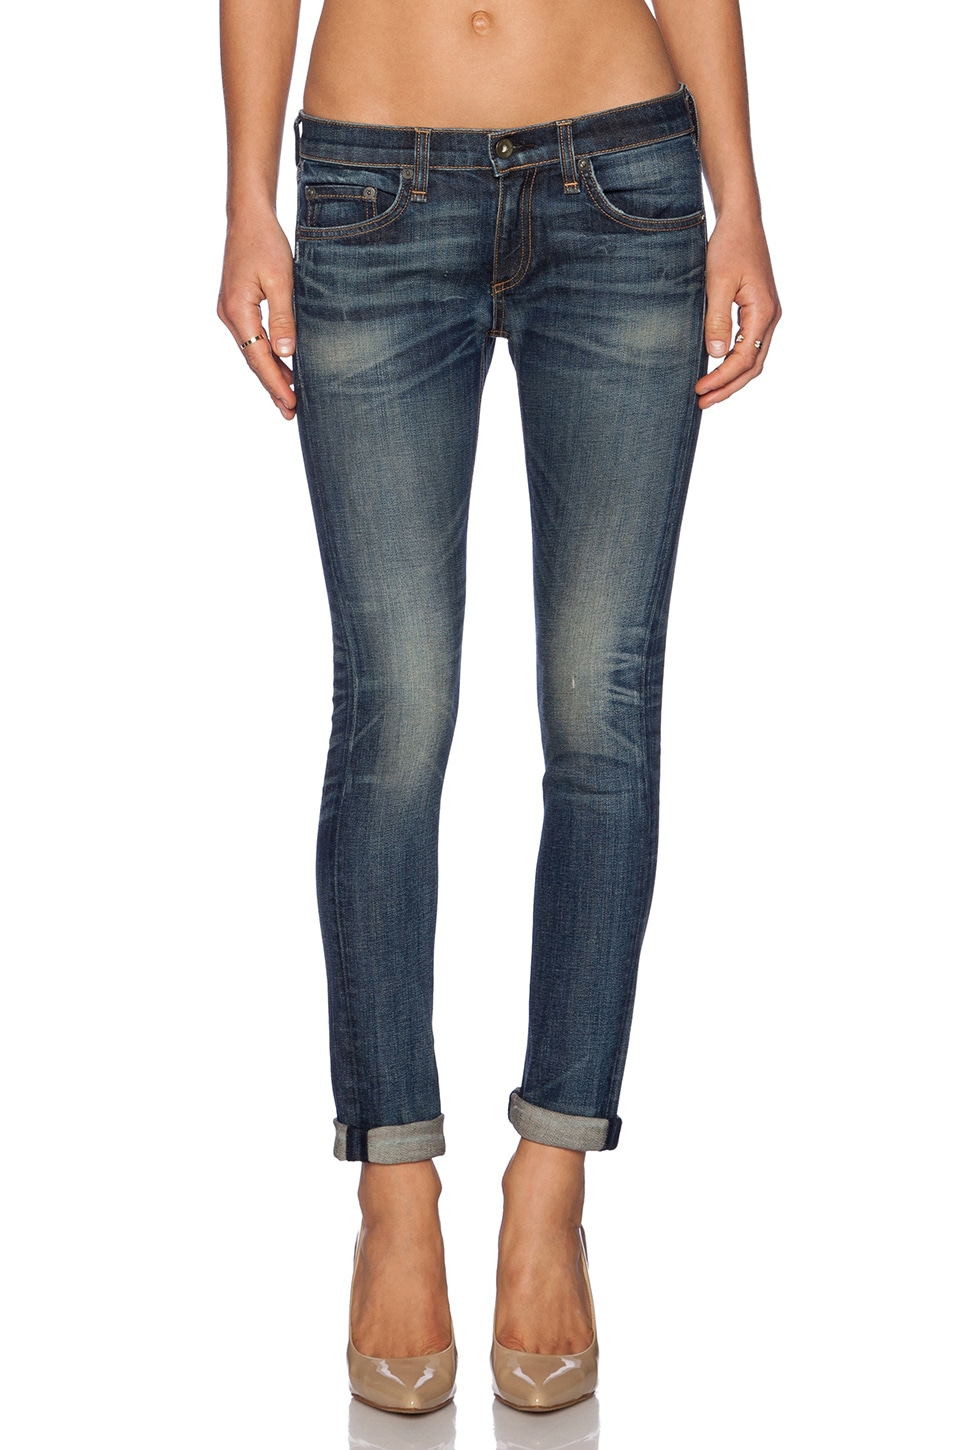 rag & bone/JEAN The Dre Boyfriend in Distressed